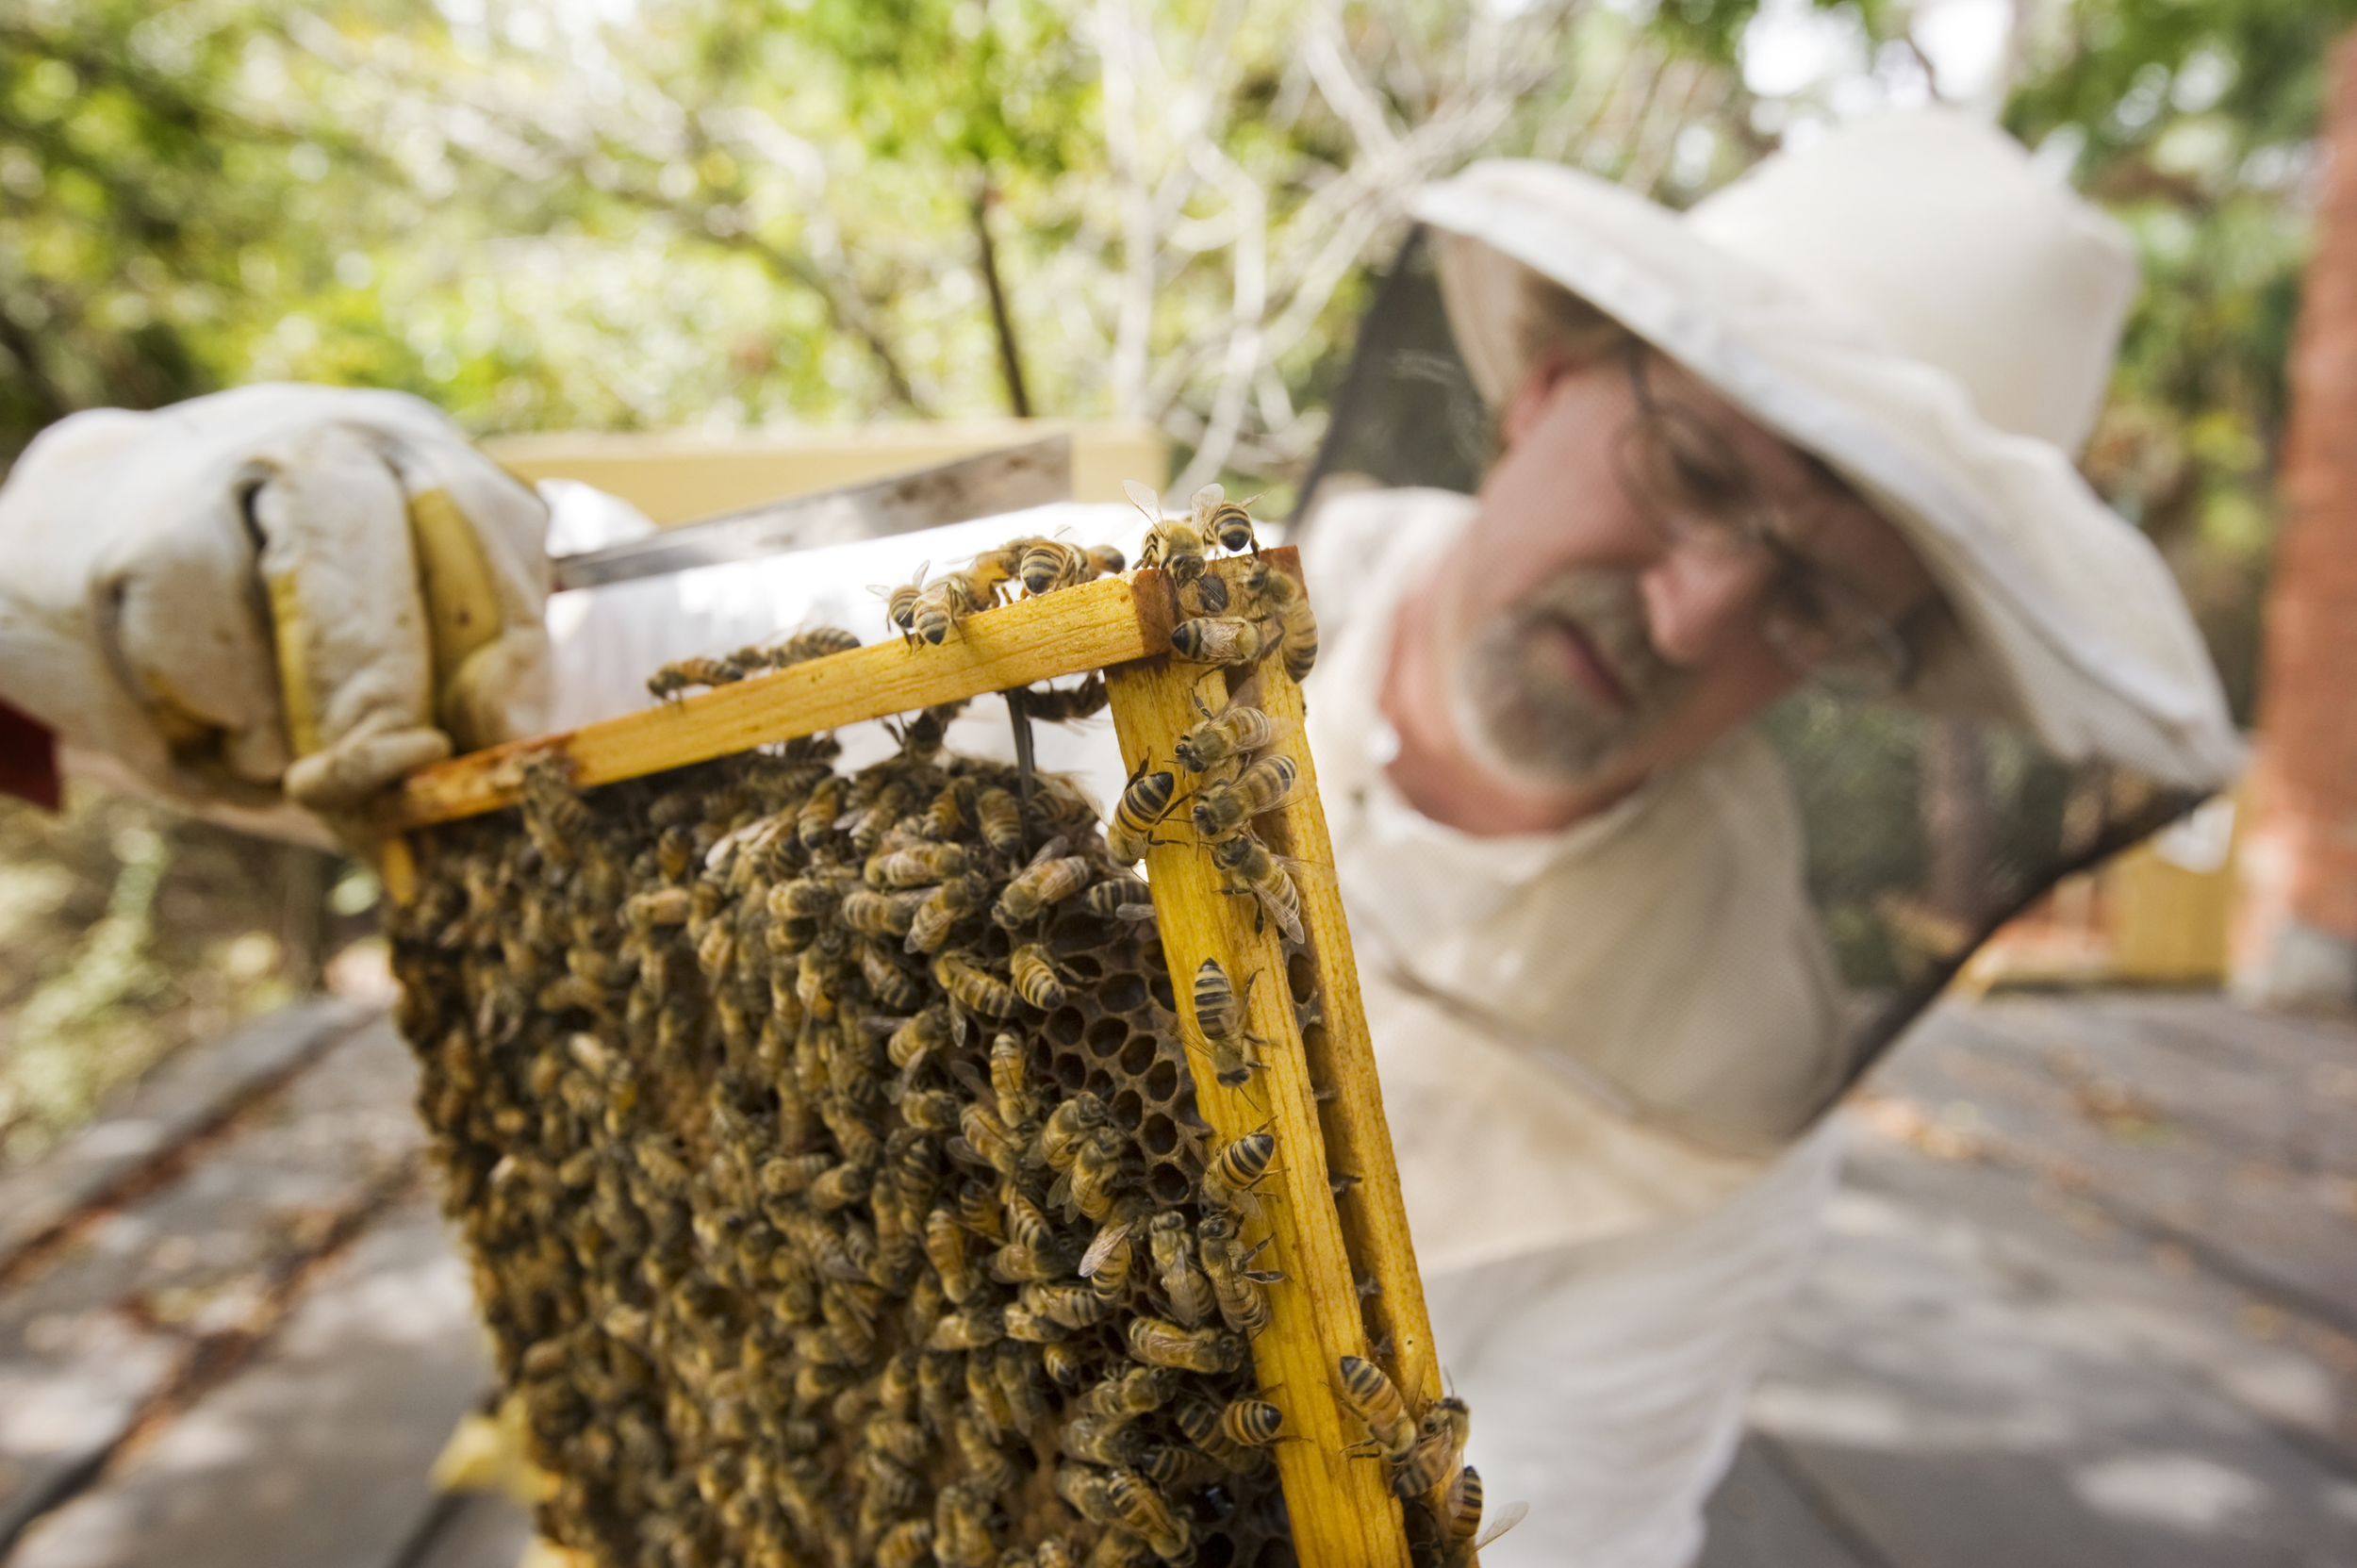 IOA_Tybee_Fleming_Hives_Honeycomb-Resize.jpg